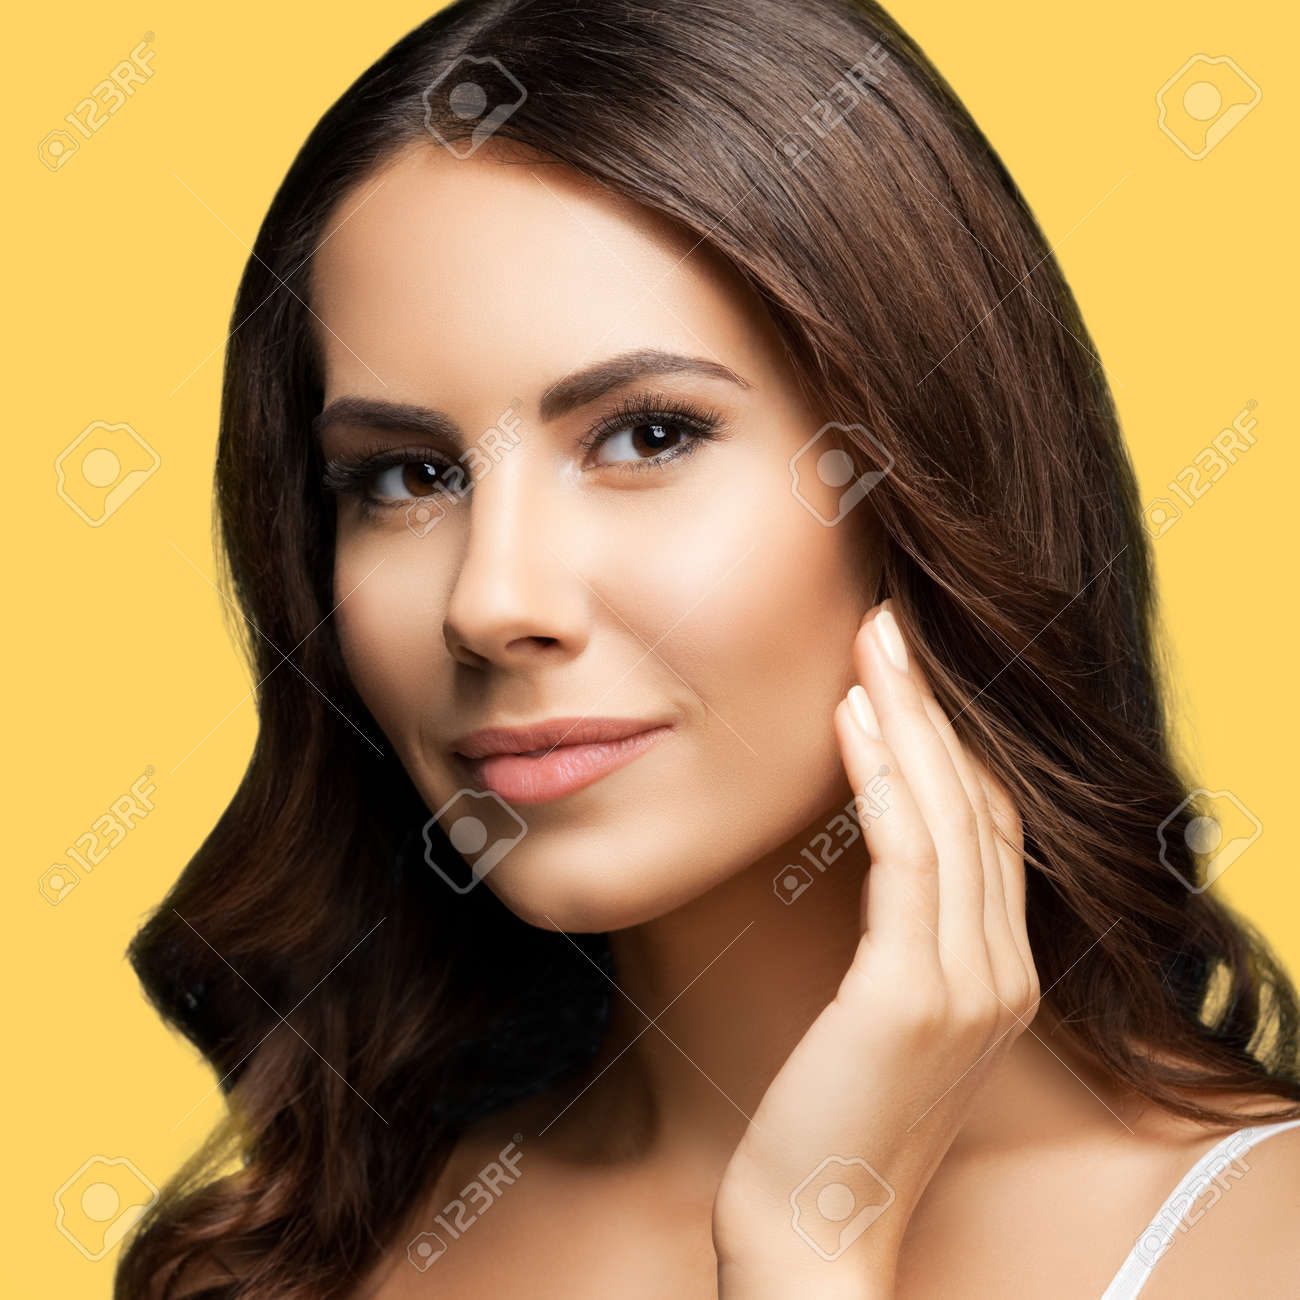 Portrait of beautiful woman in white casual tank top, over yellow color background. Brunette girl at studio beauty concept. Square composition image. - 172264321